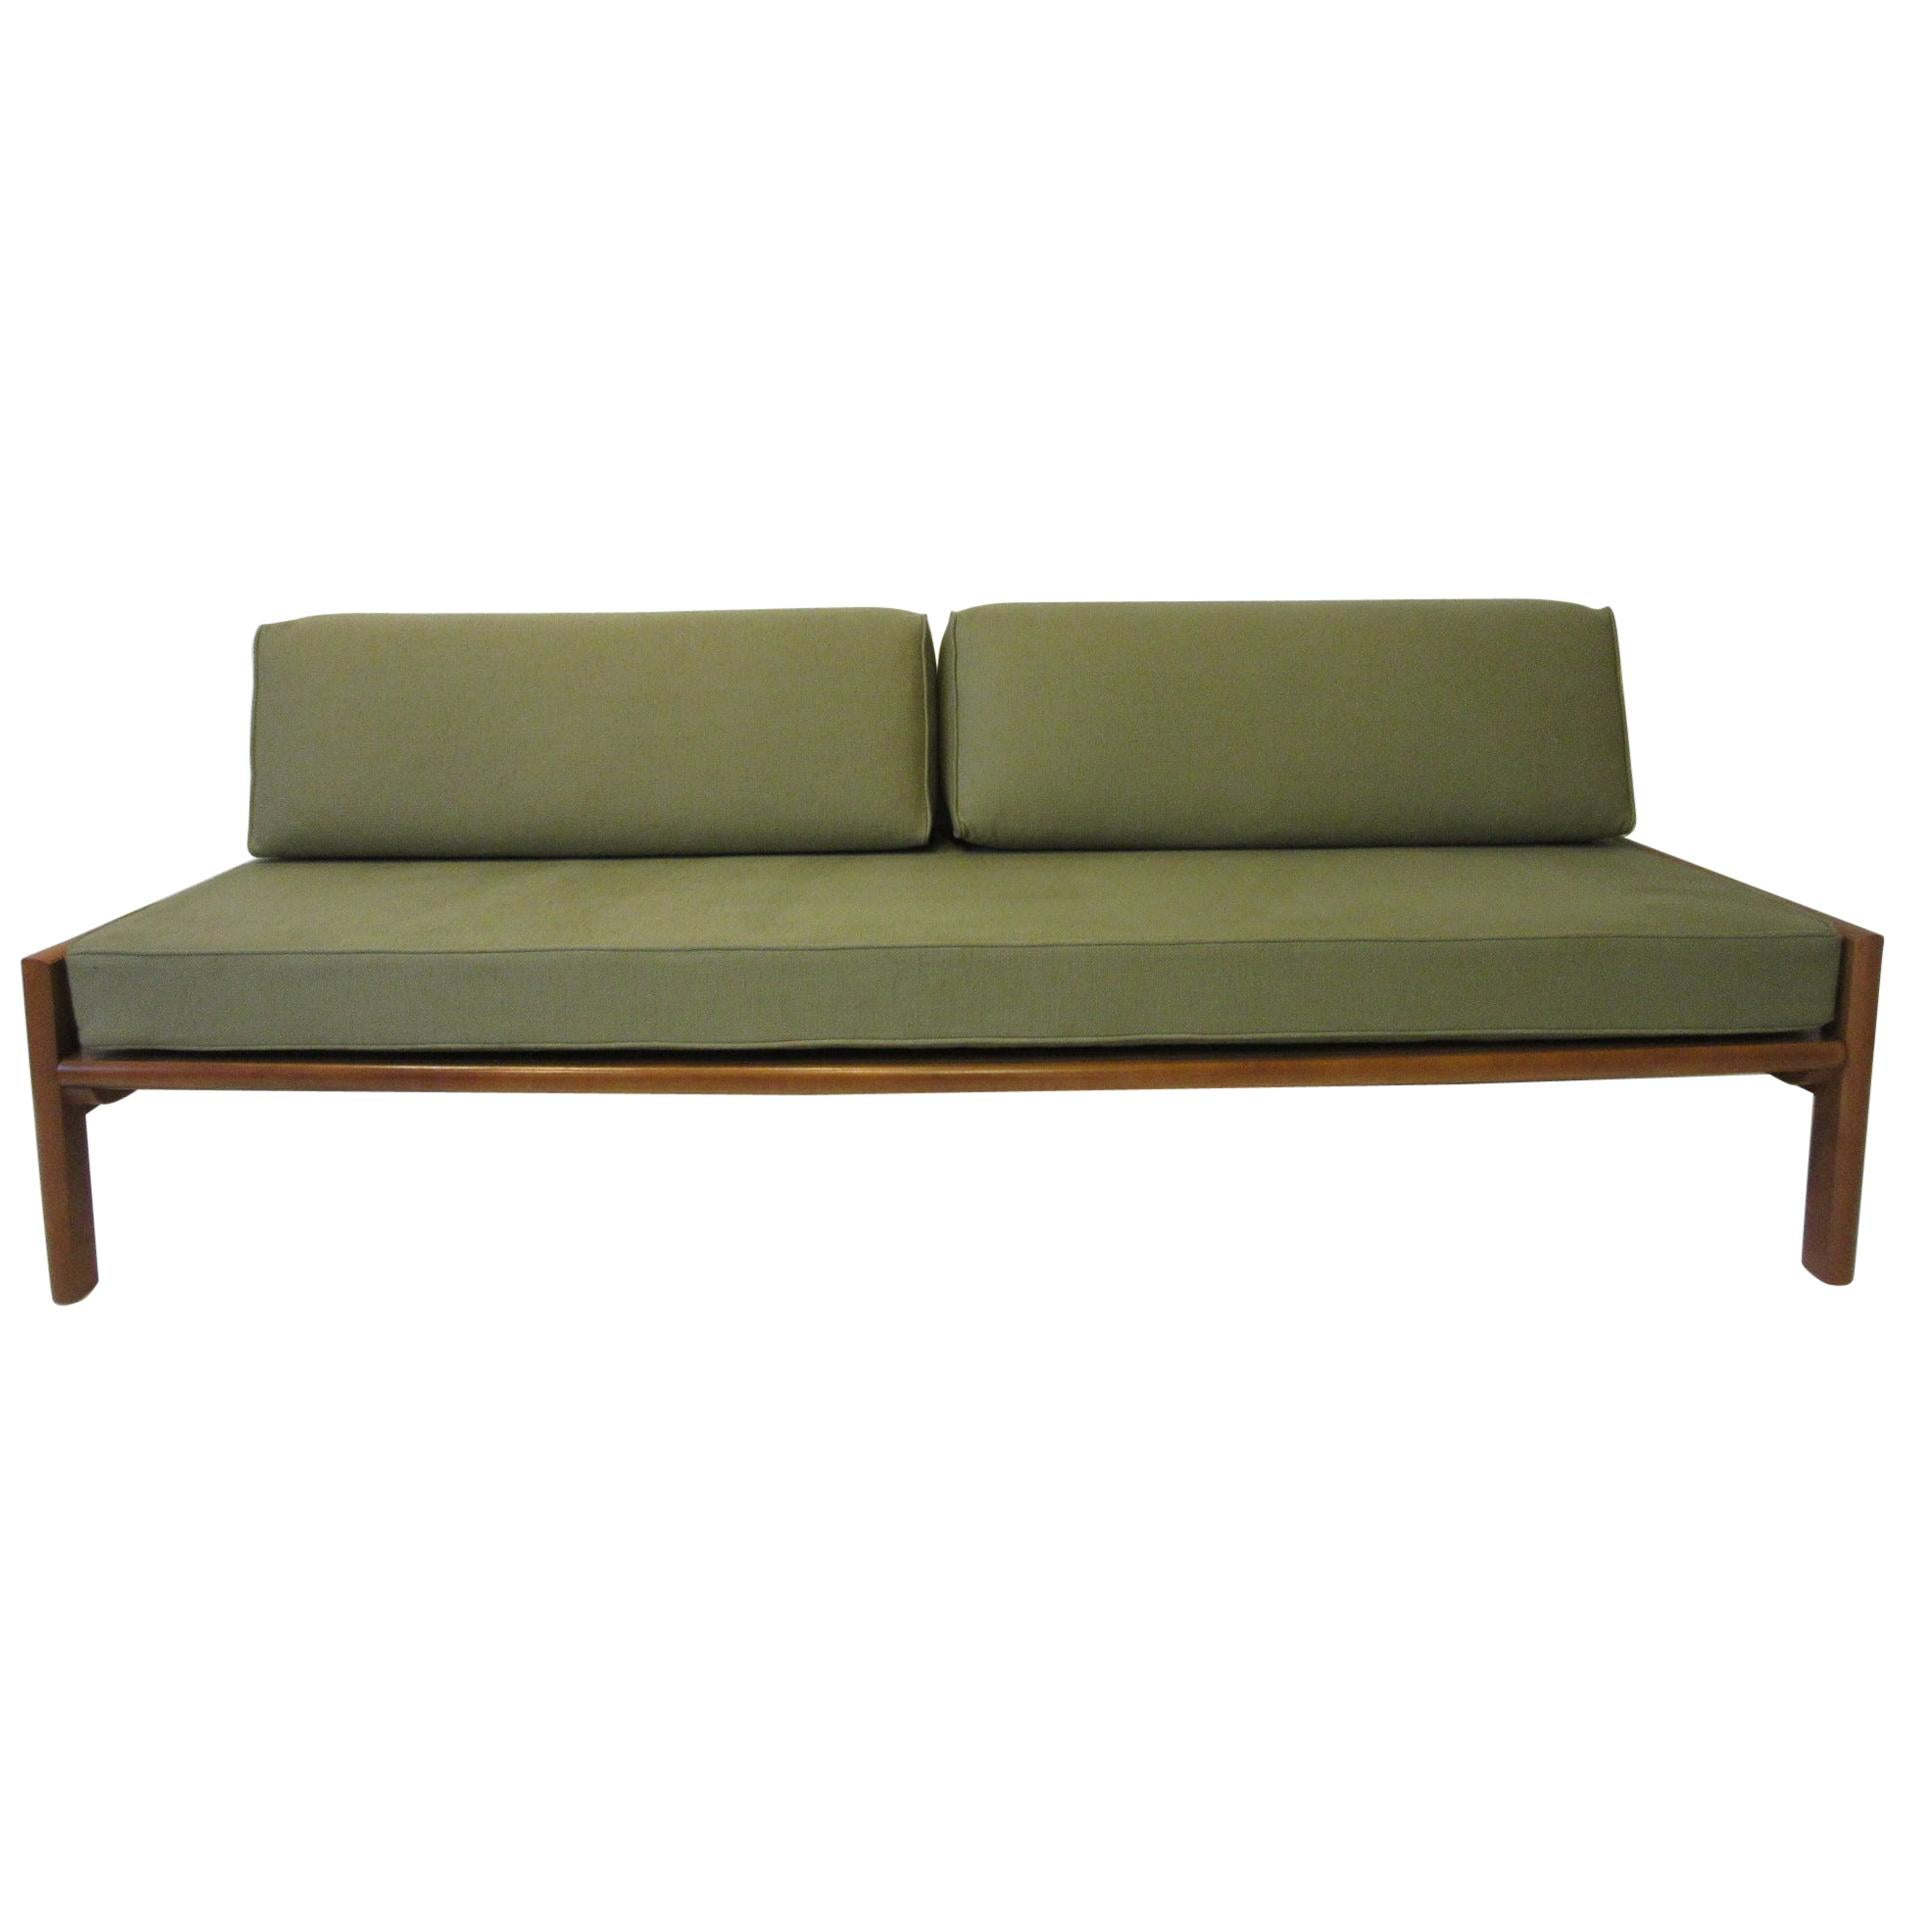 Midcentury Daybed / Sofa in the Style of Van Keppel Green